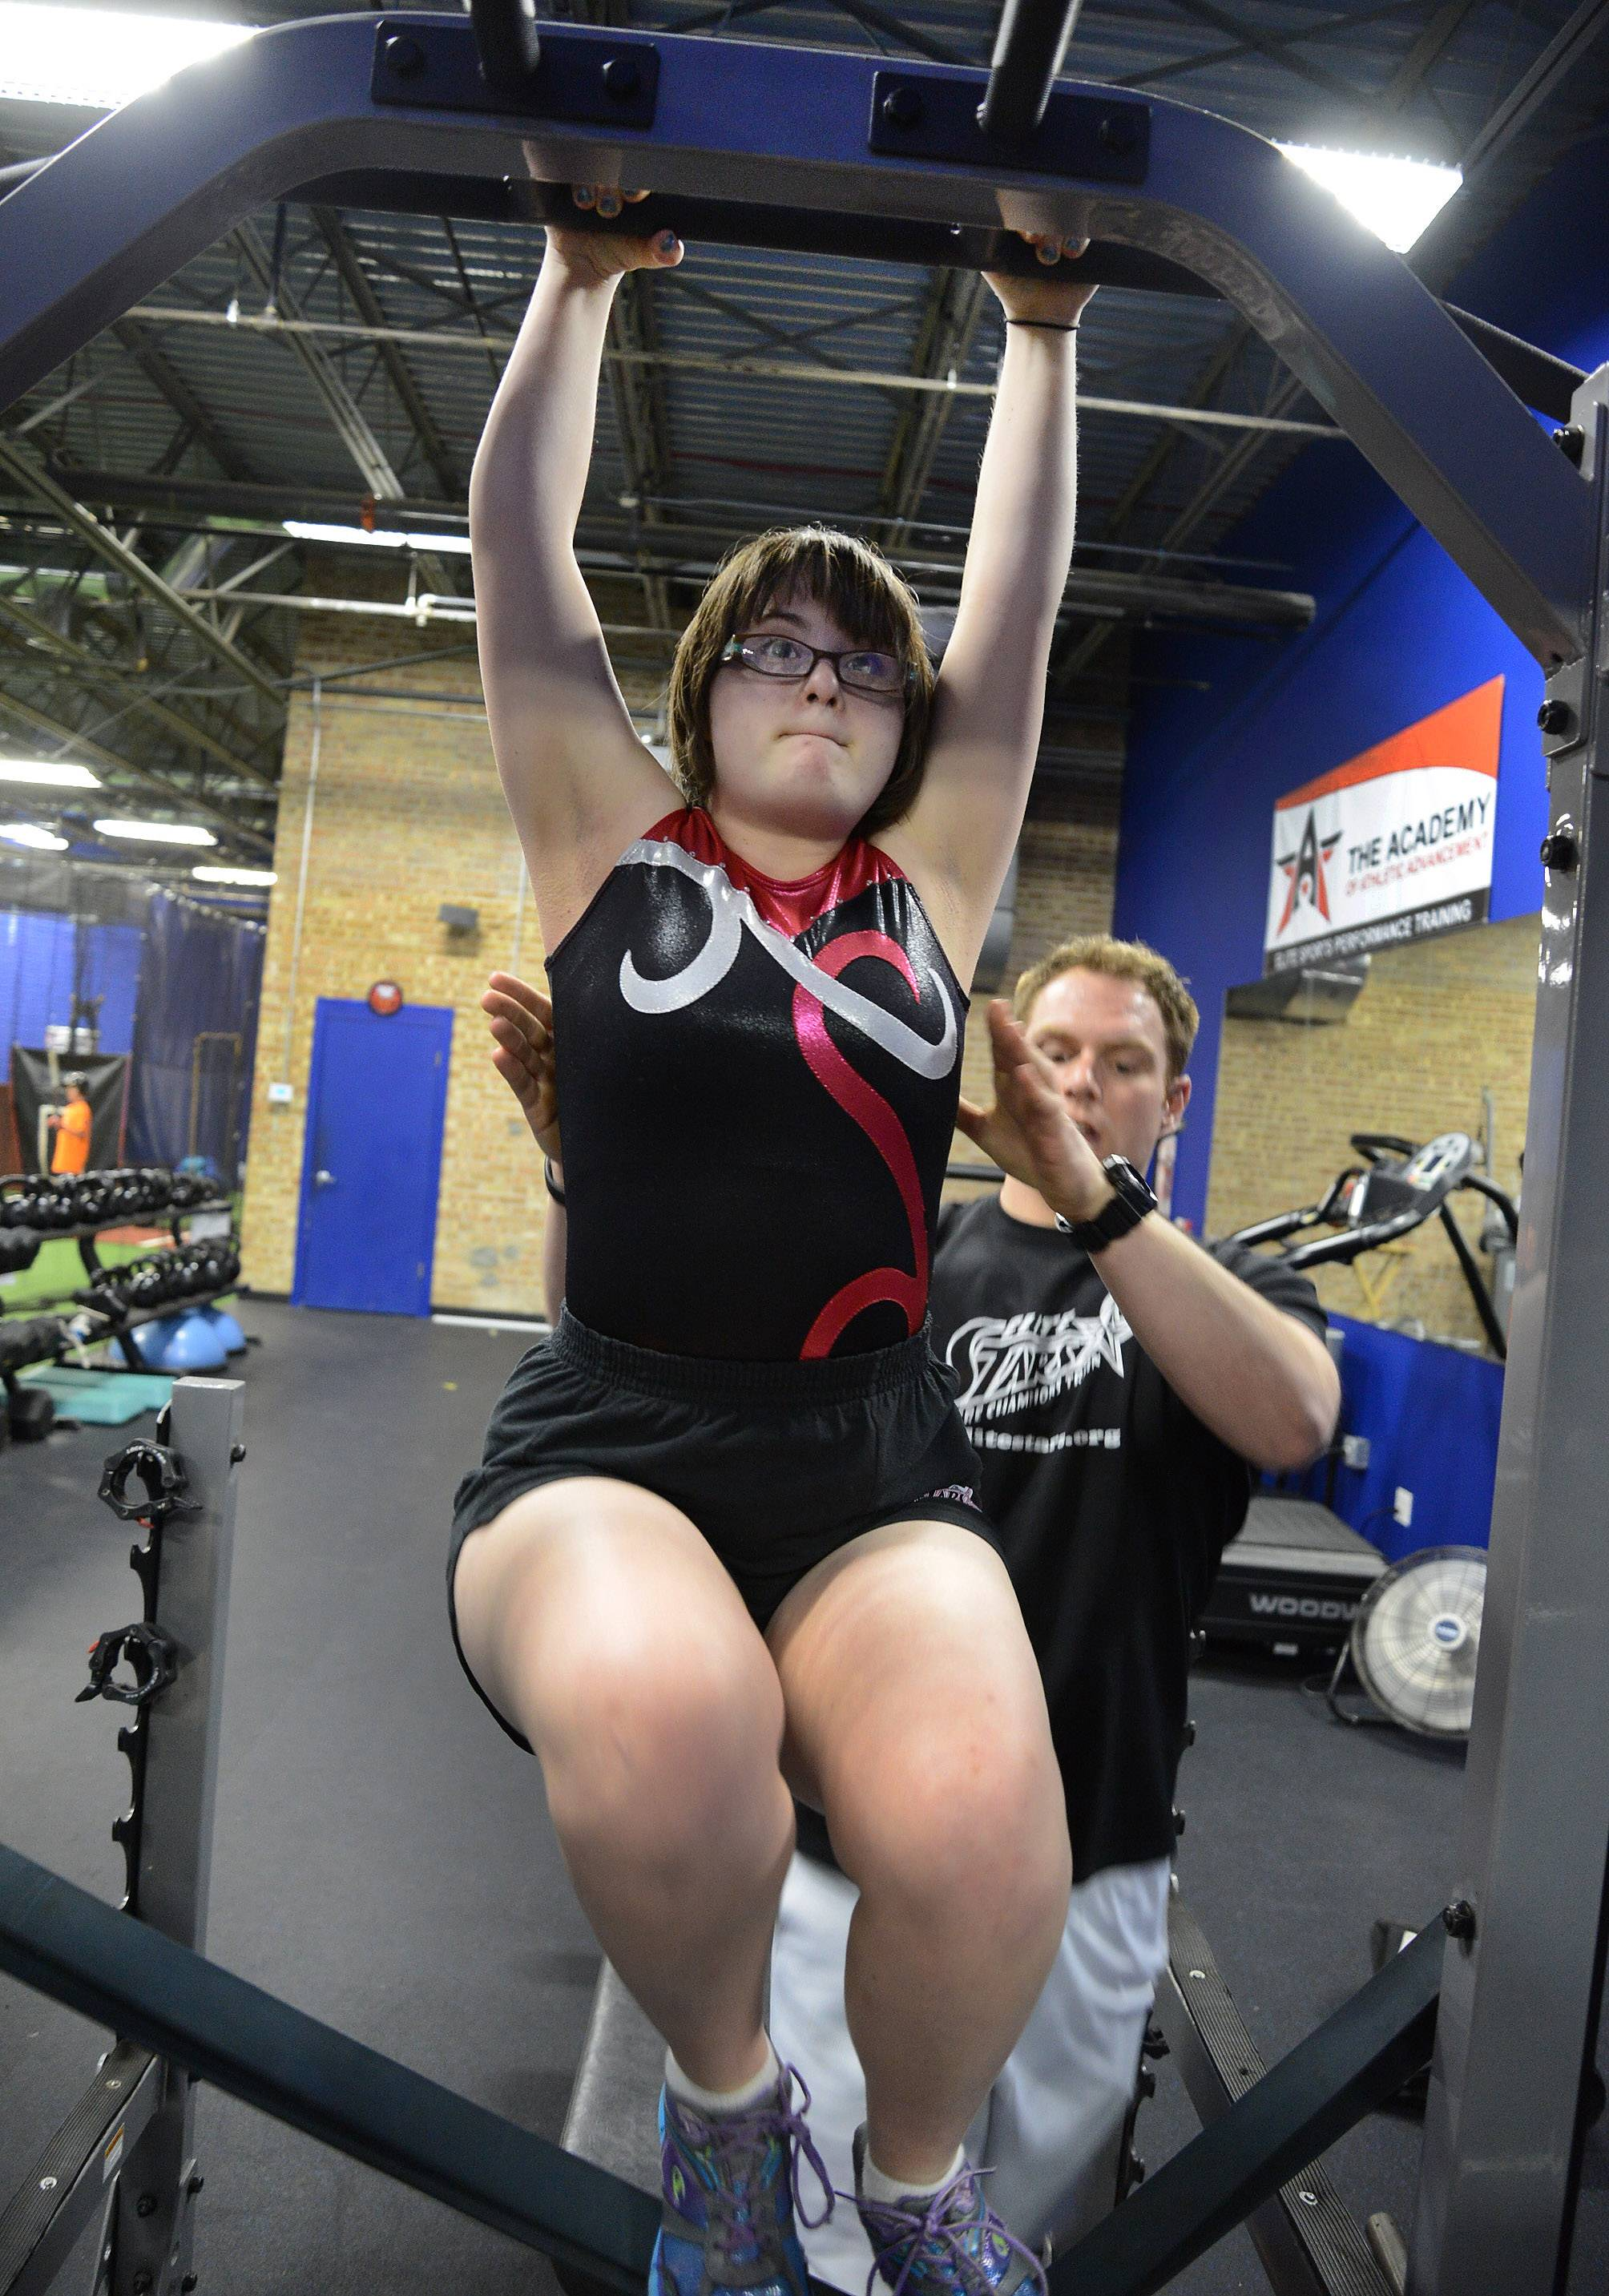 Karlee Darow of Palatine puts in some final practice this week with her trainer, Jason Domnanovich, before heading to New Jersey for the Special Olympics 2014 USA Games. Karlee, who has participated in gymnastics for a decade, has big goals for the national games.